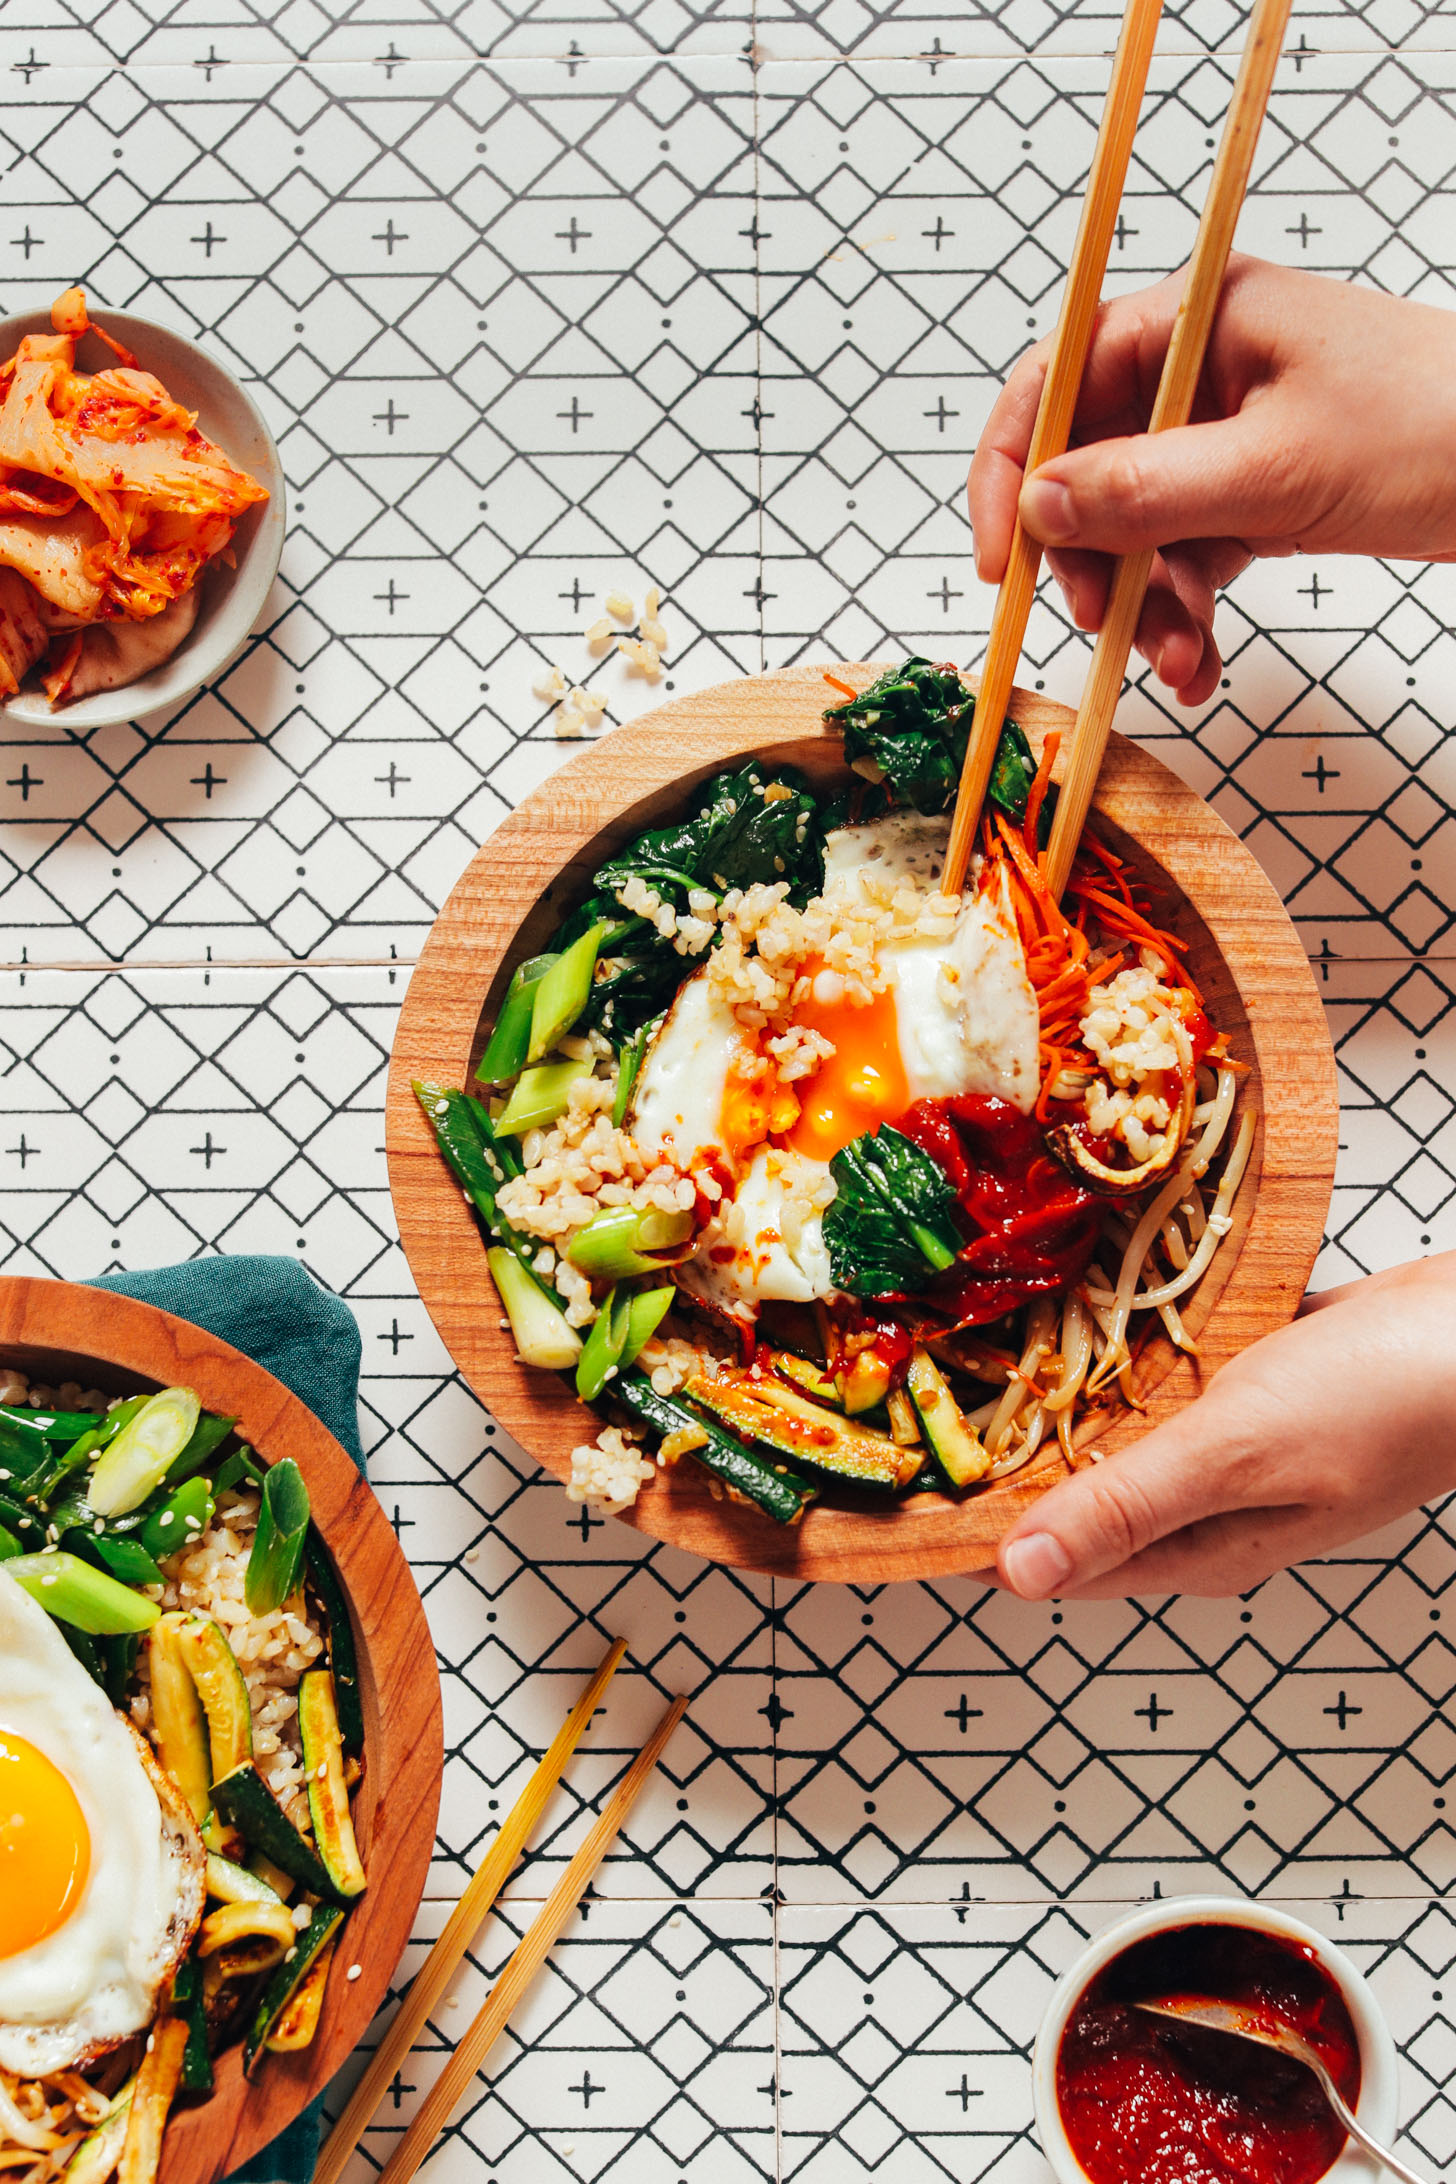 Using chopsticks to pick up a bite of a delicious homemade Korean Bibimbap bowl